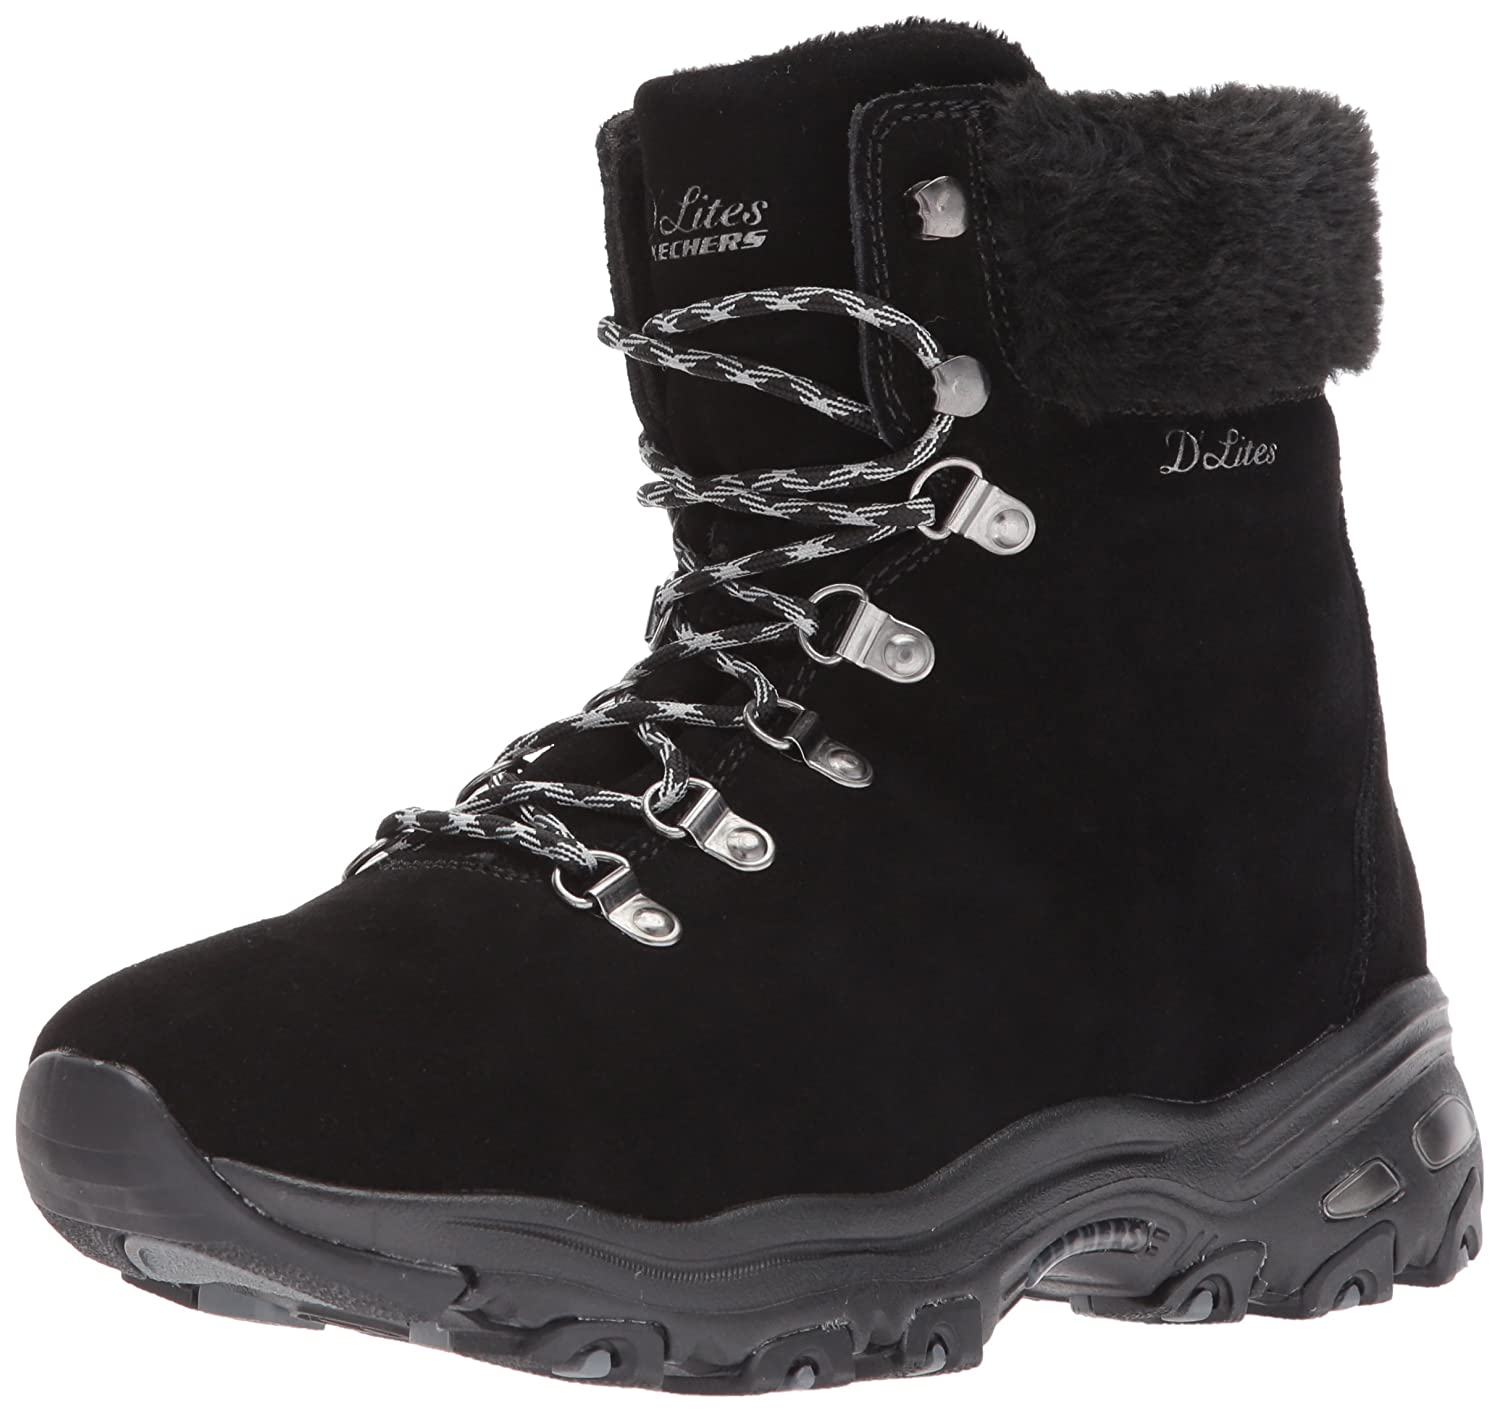 Skechers Women's D'Lites-Alps W Snow Shoe B071LMDGXP 11 W US|Black